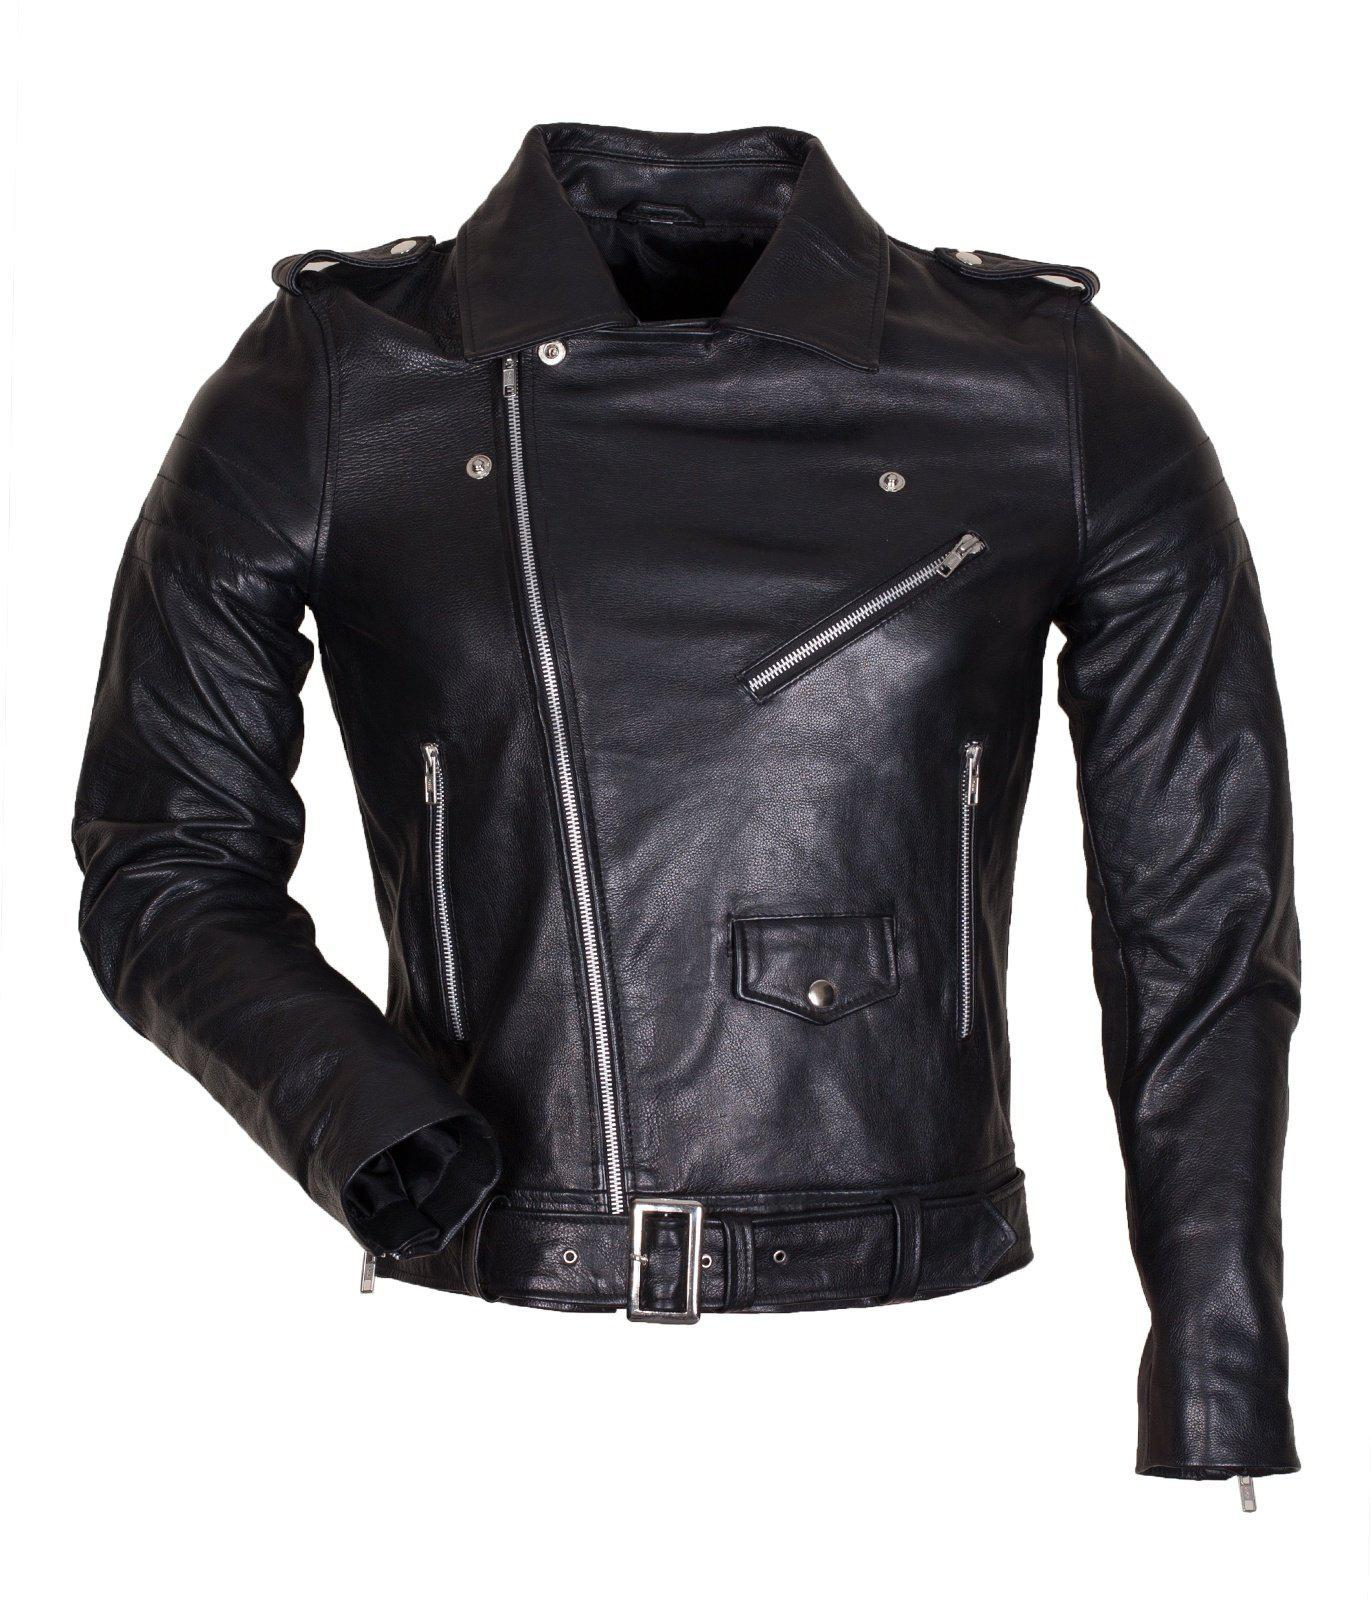 Marlon Brando Belted Jacket in Genuine Leather